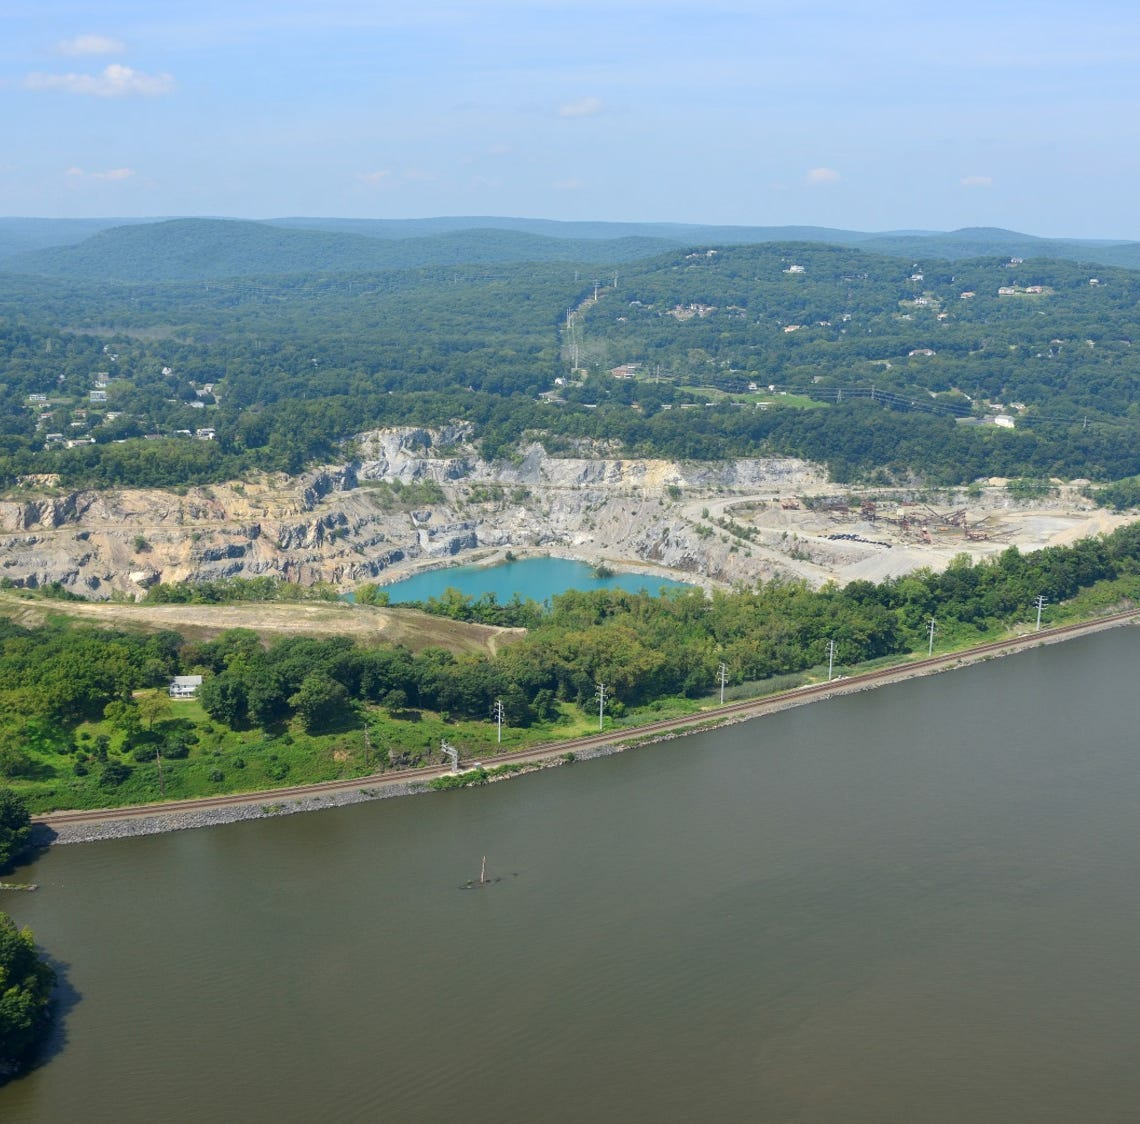 Stony Point: Reclamation project wants to turn quarry into green space